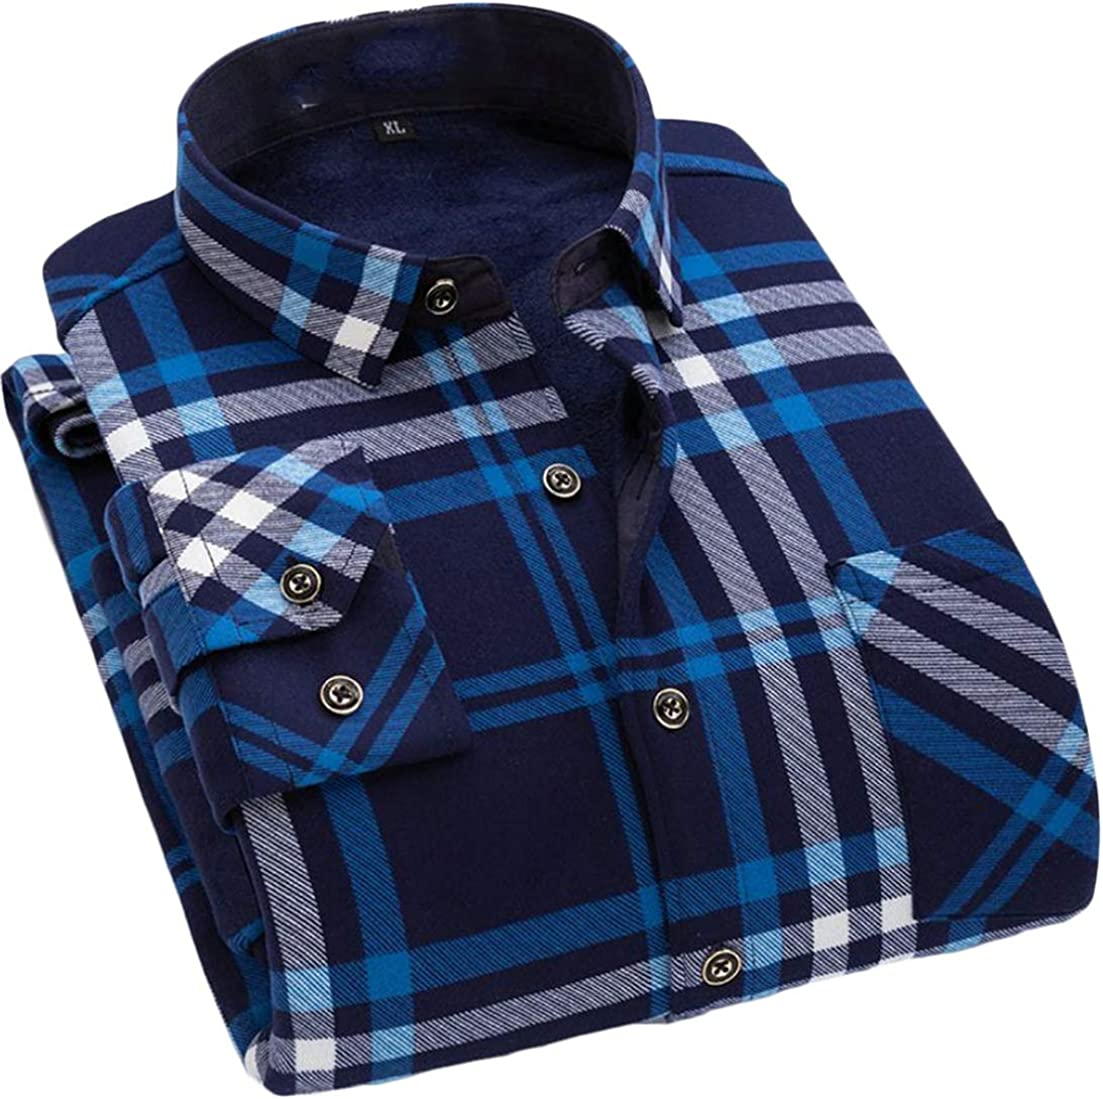 Wofupowga Men Long Sleeve Autumn Winter Warm Checkered Fleece Button Front Shirts